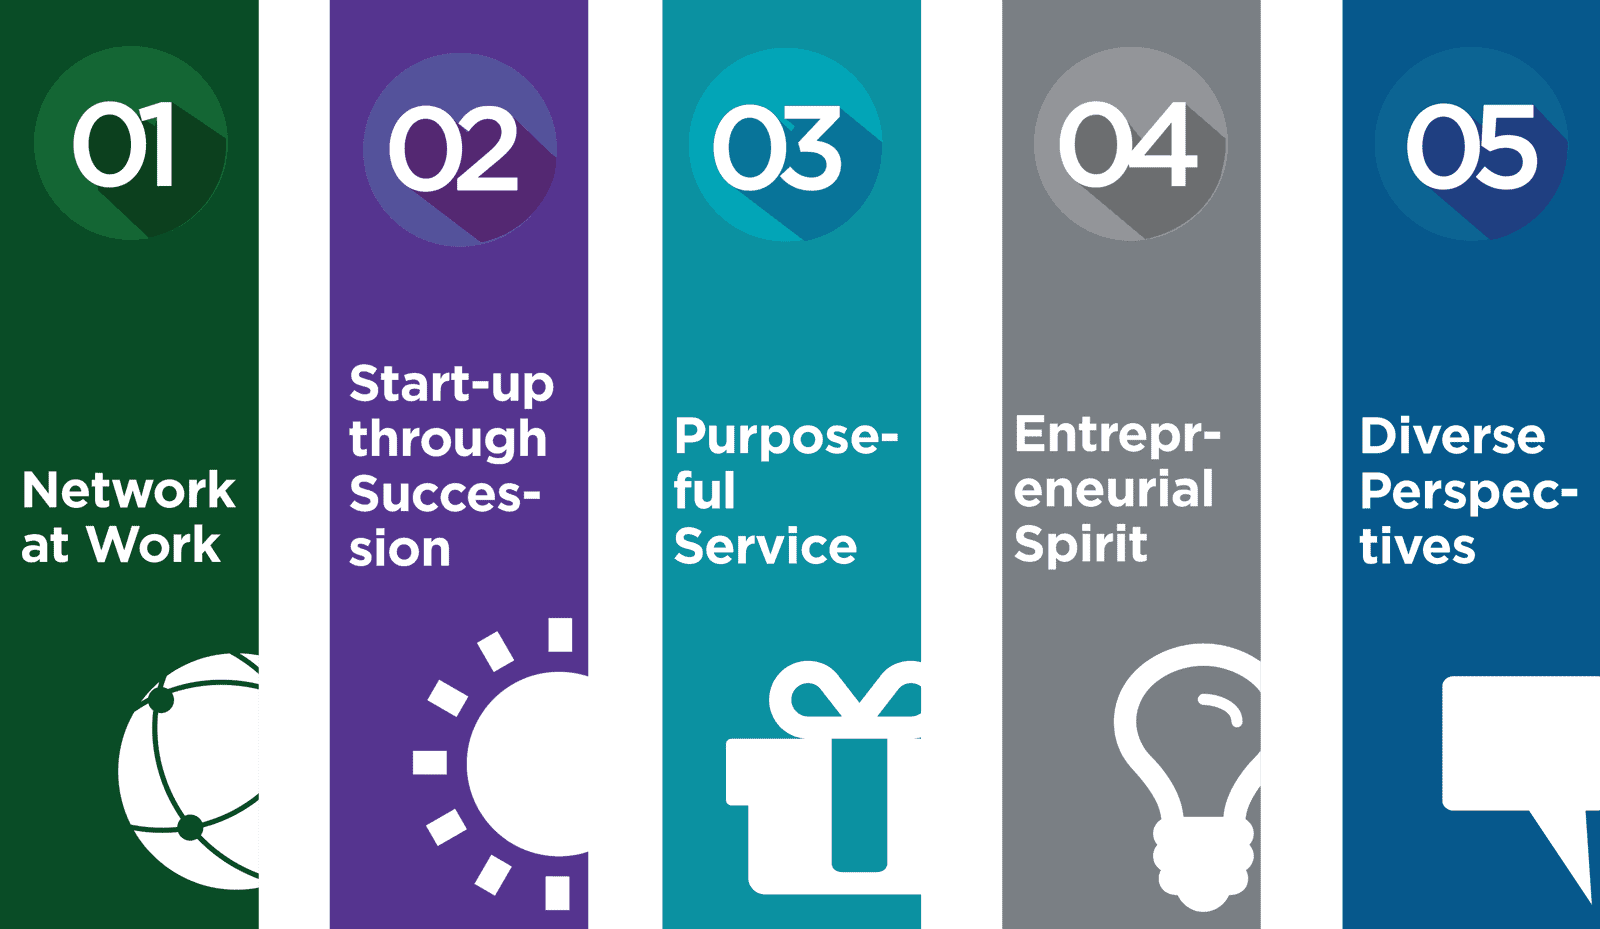 1. Network at work 2. Start-up through success 3. Purposeful Service 4. Entrepreneurial Spirit 5. Diverse Perspective